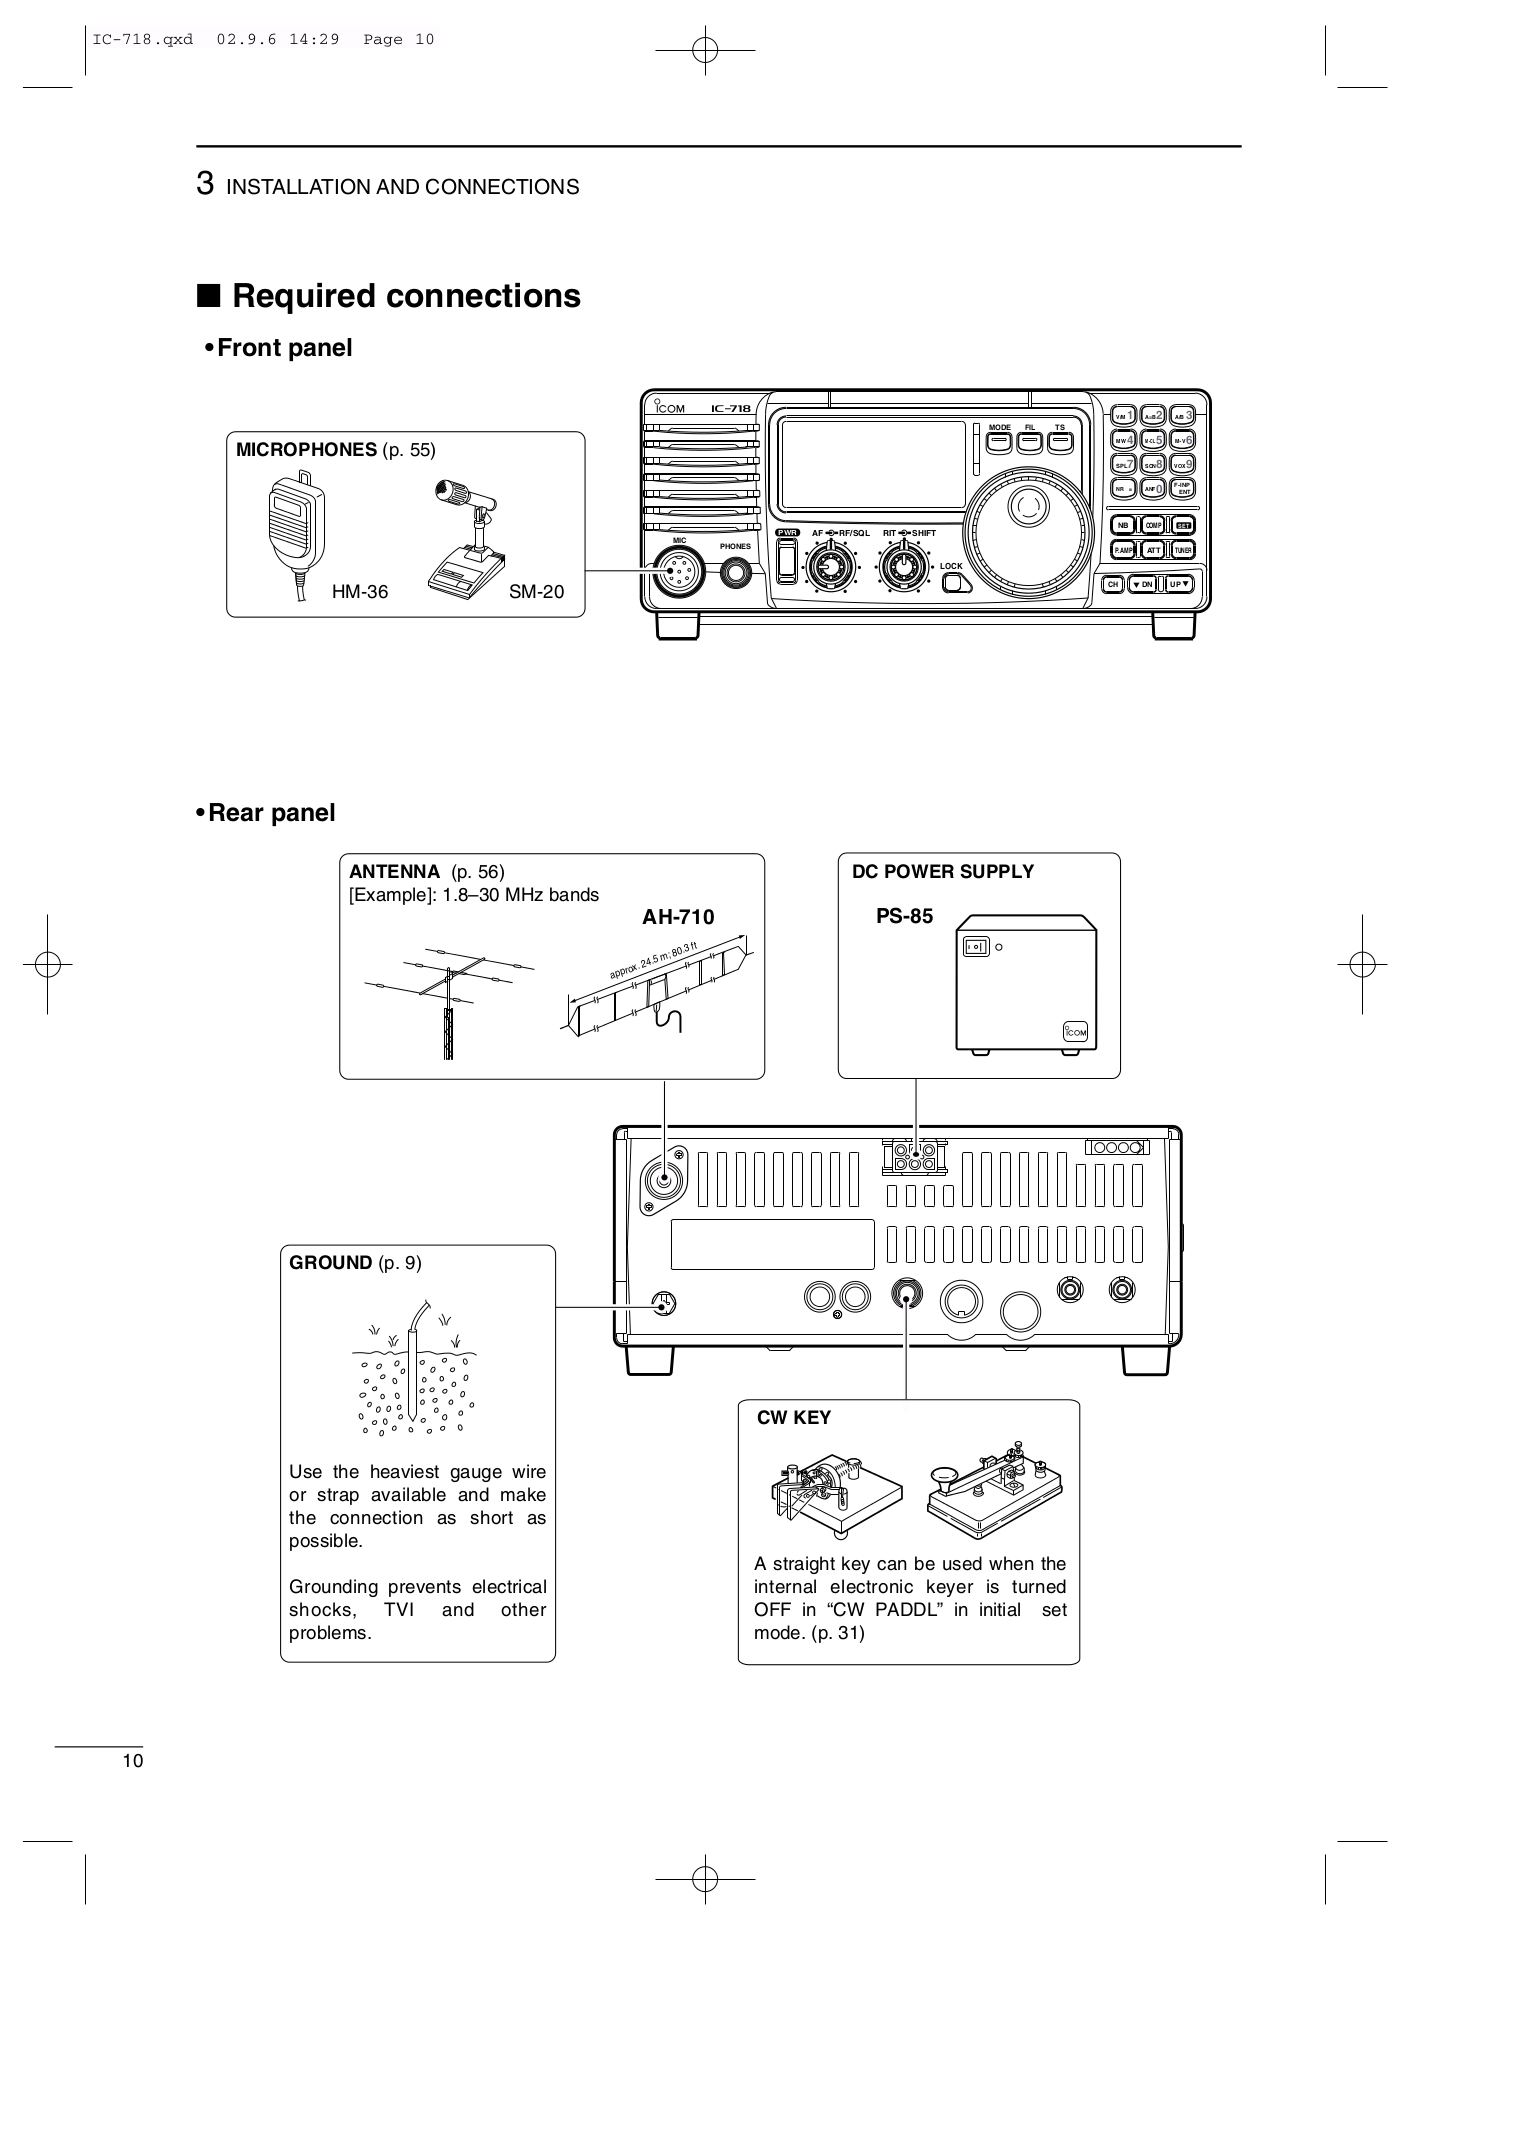 Pdf Manual For Icom Other At